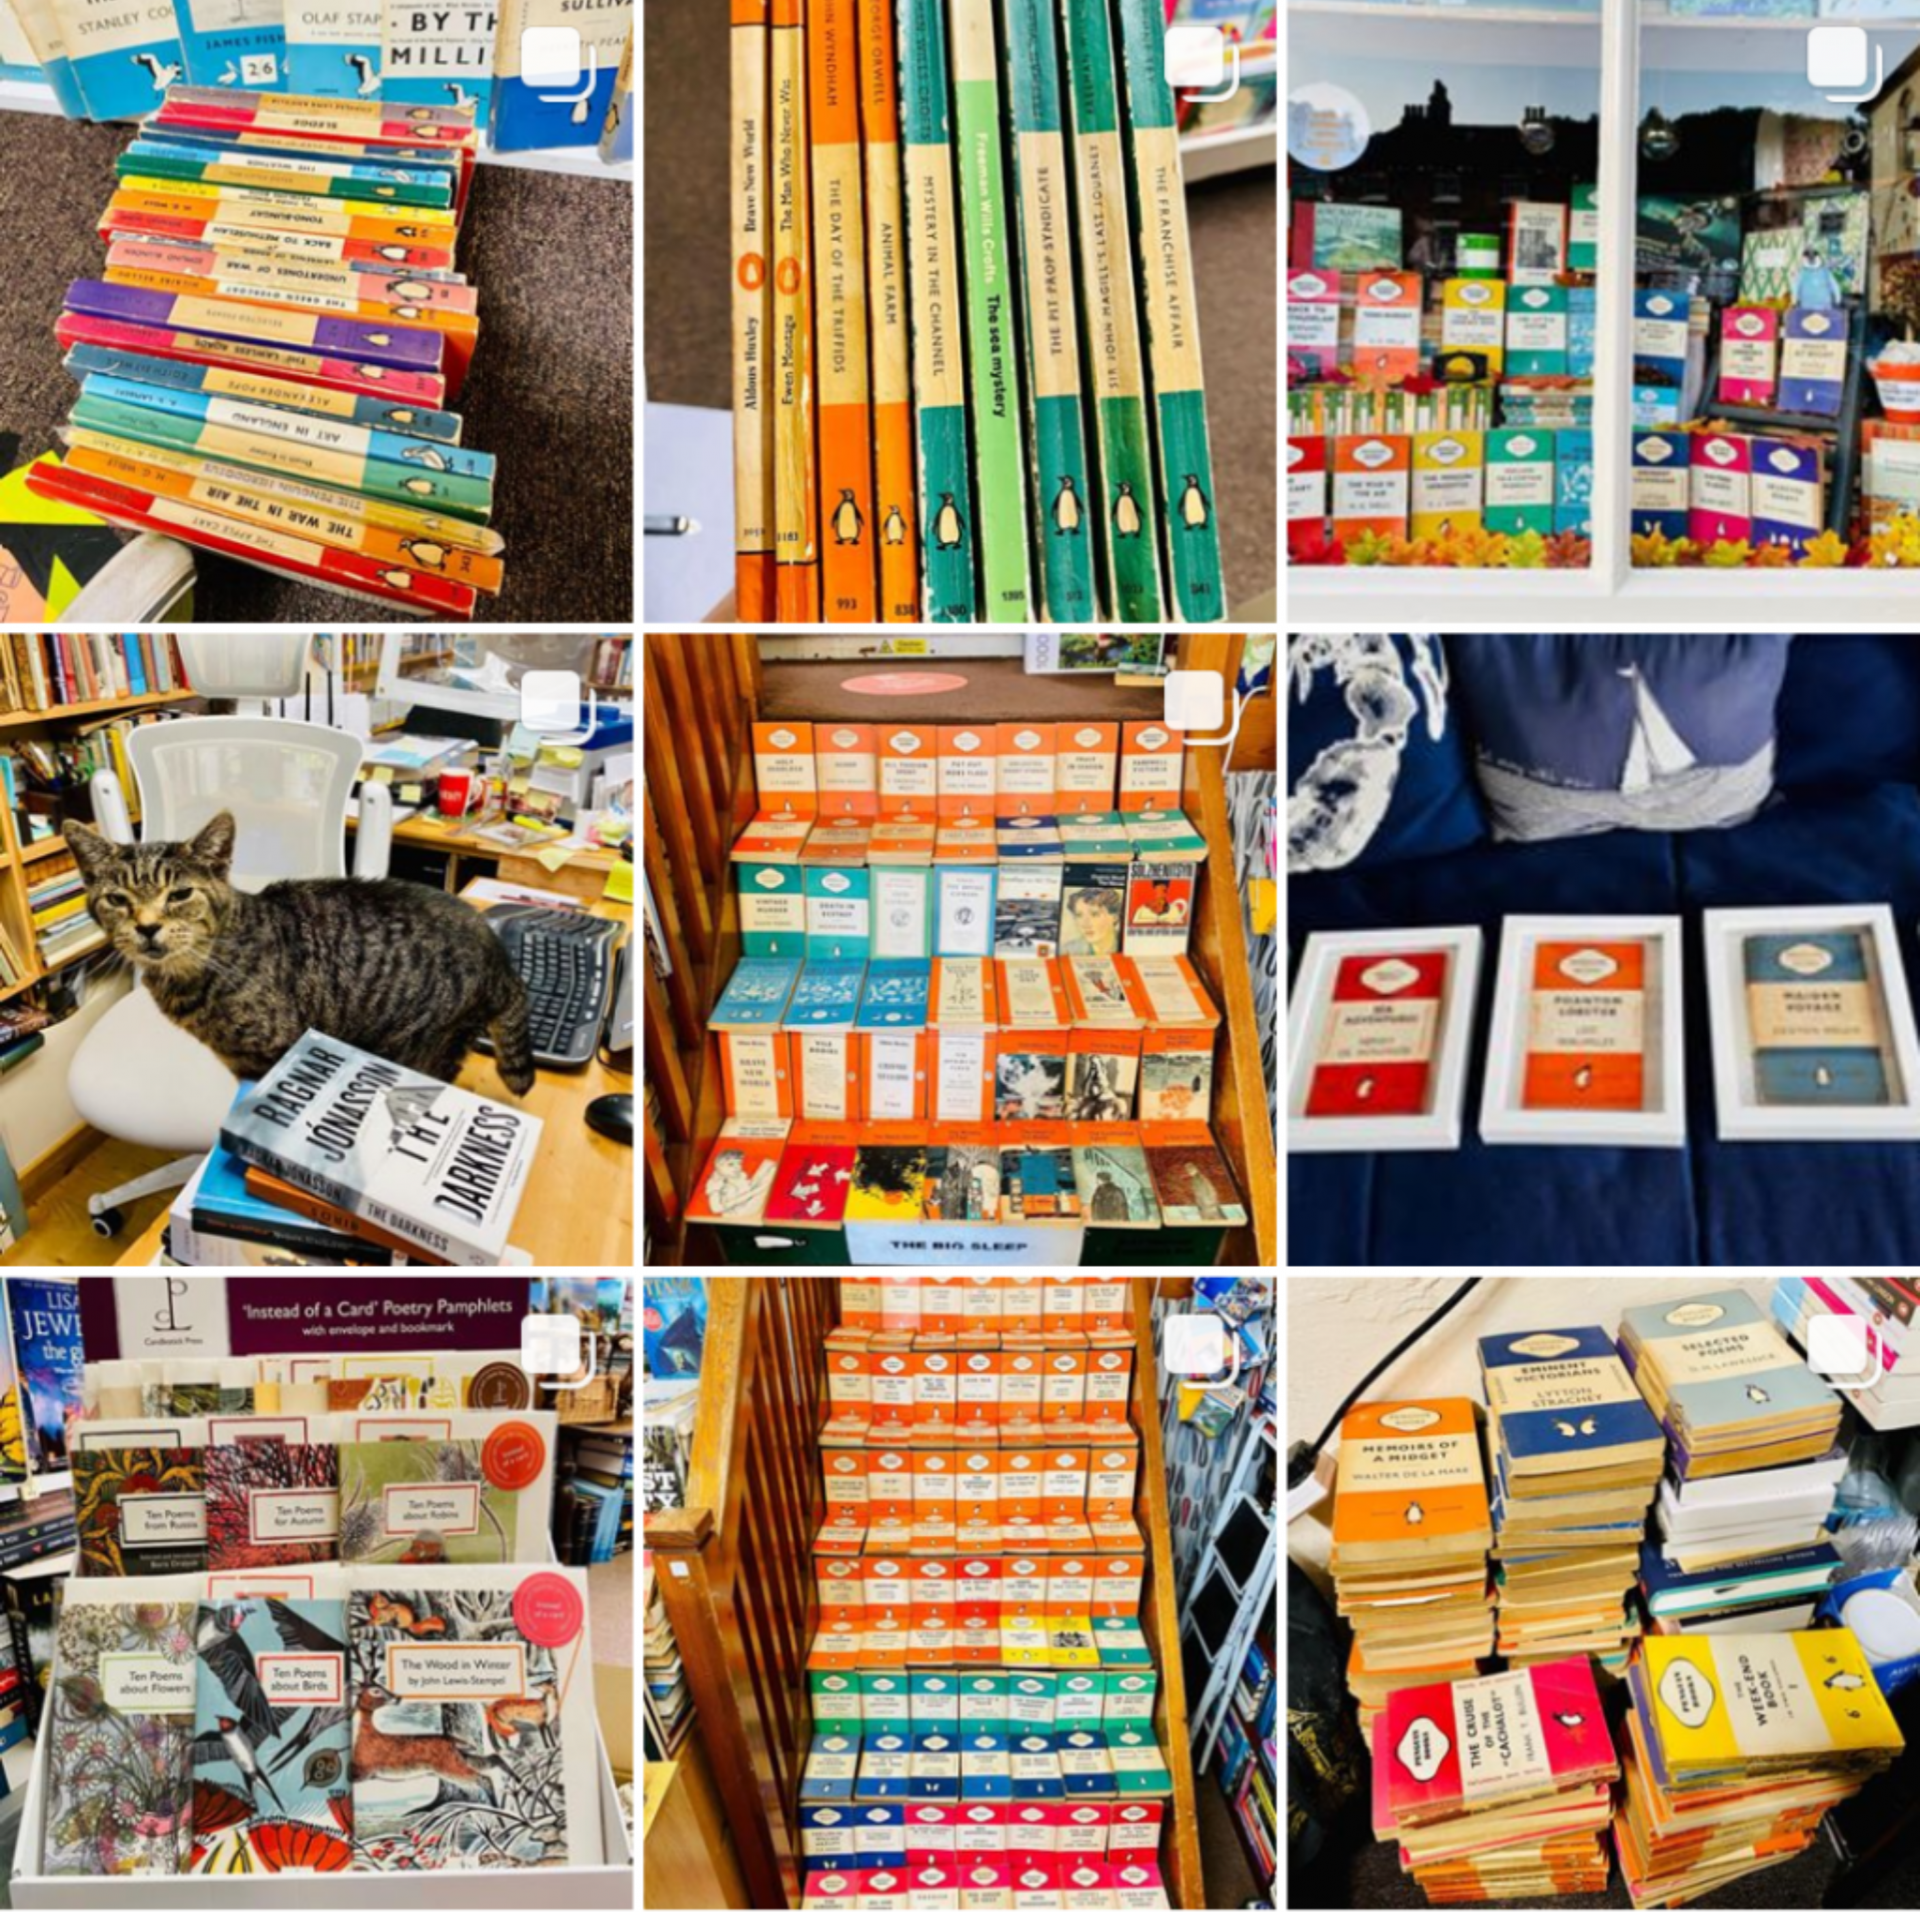 The Ironbridge Bookshop Bookstagram feed for Interview with a Bookstagrammer The Ironbridge Bookshop